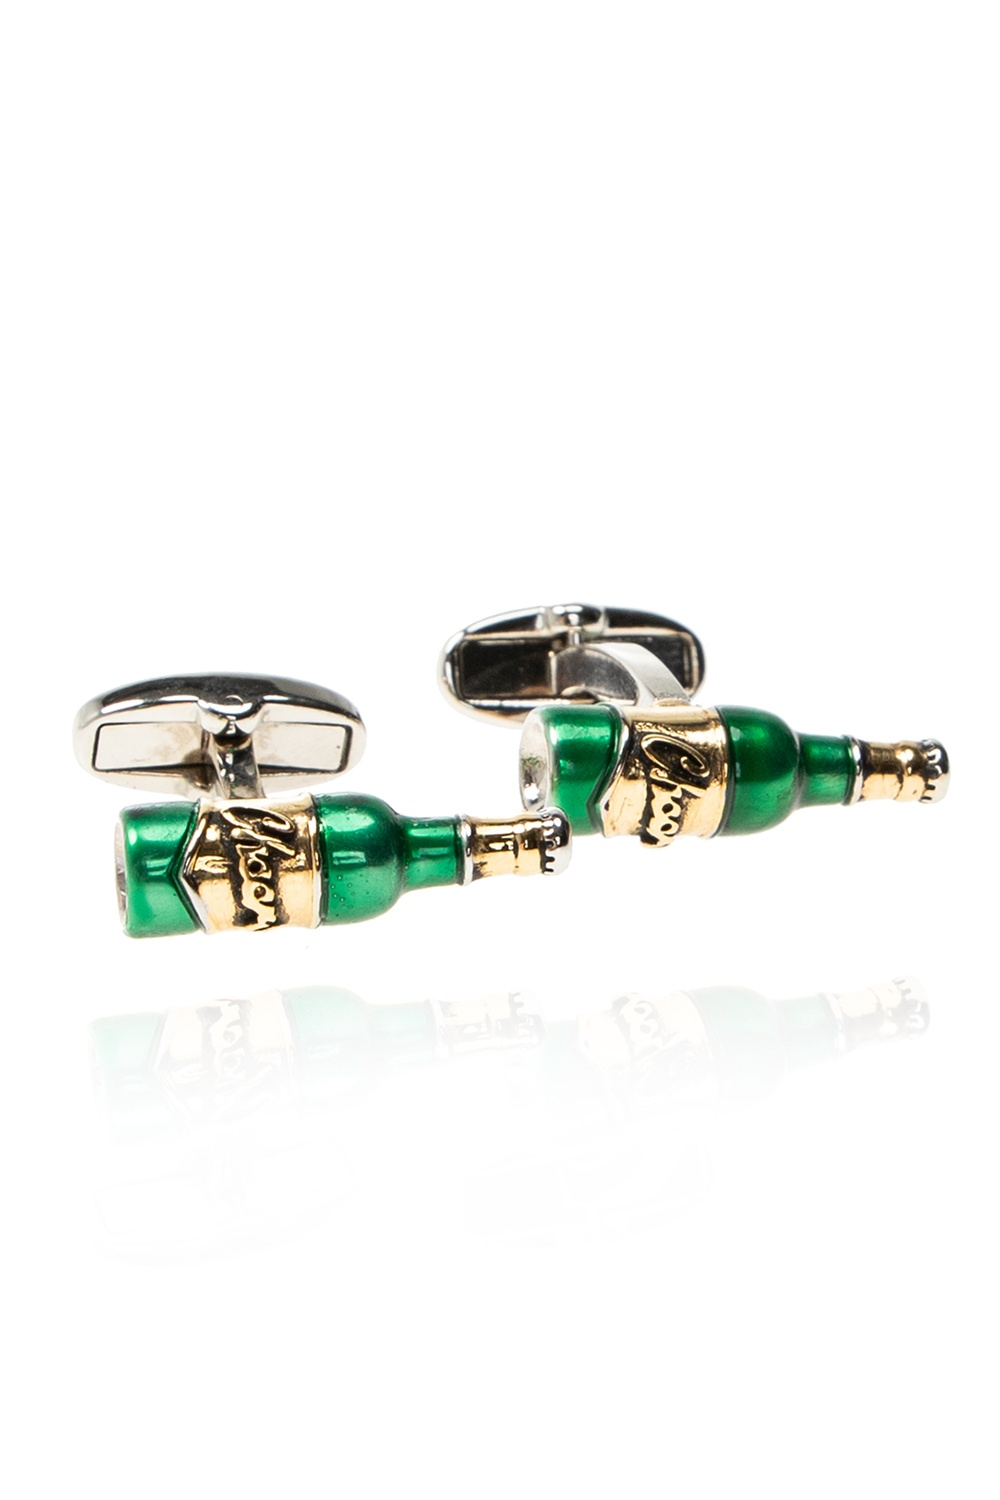 Paul Smith Bottle cuff links